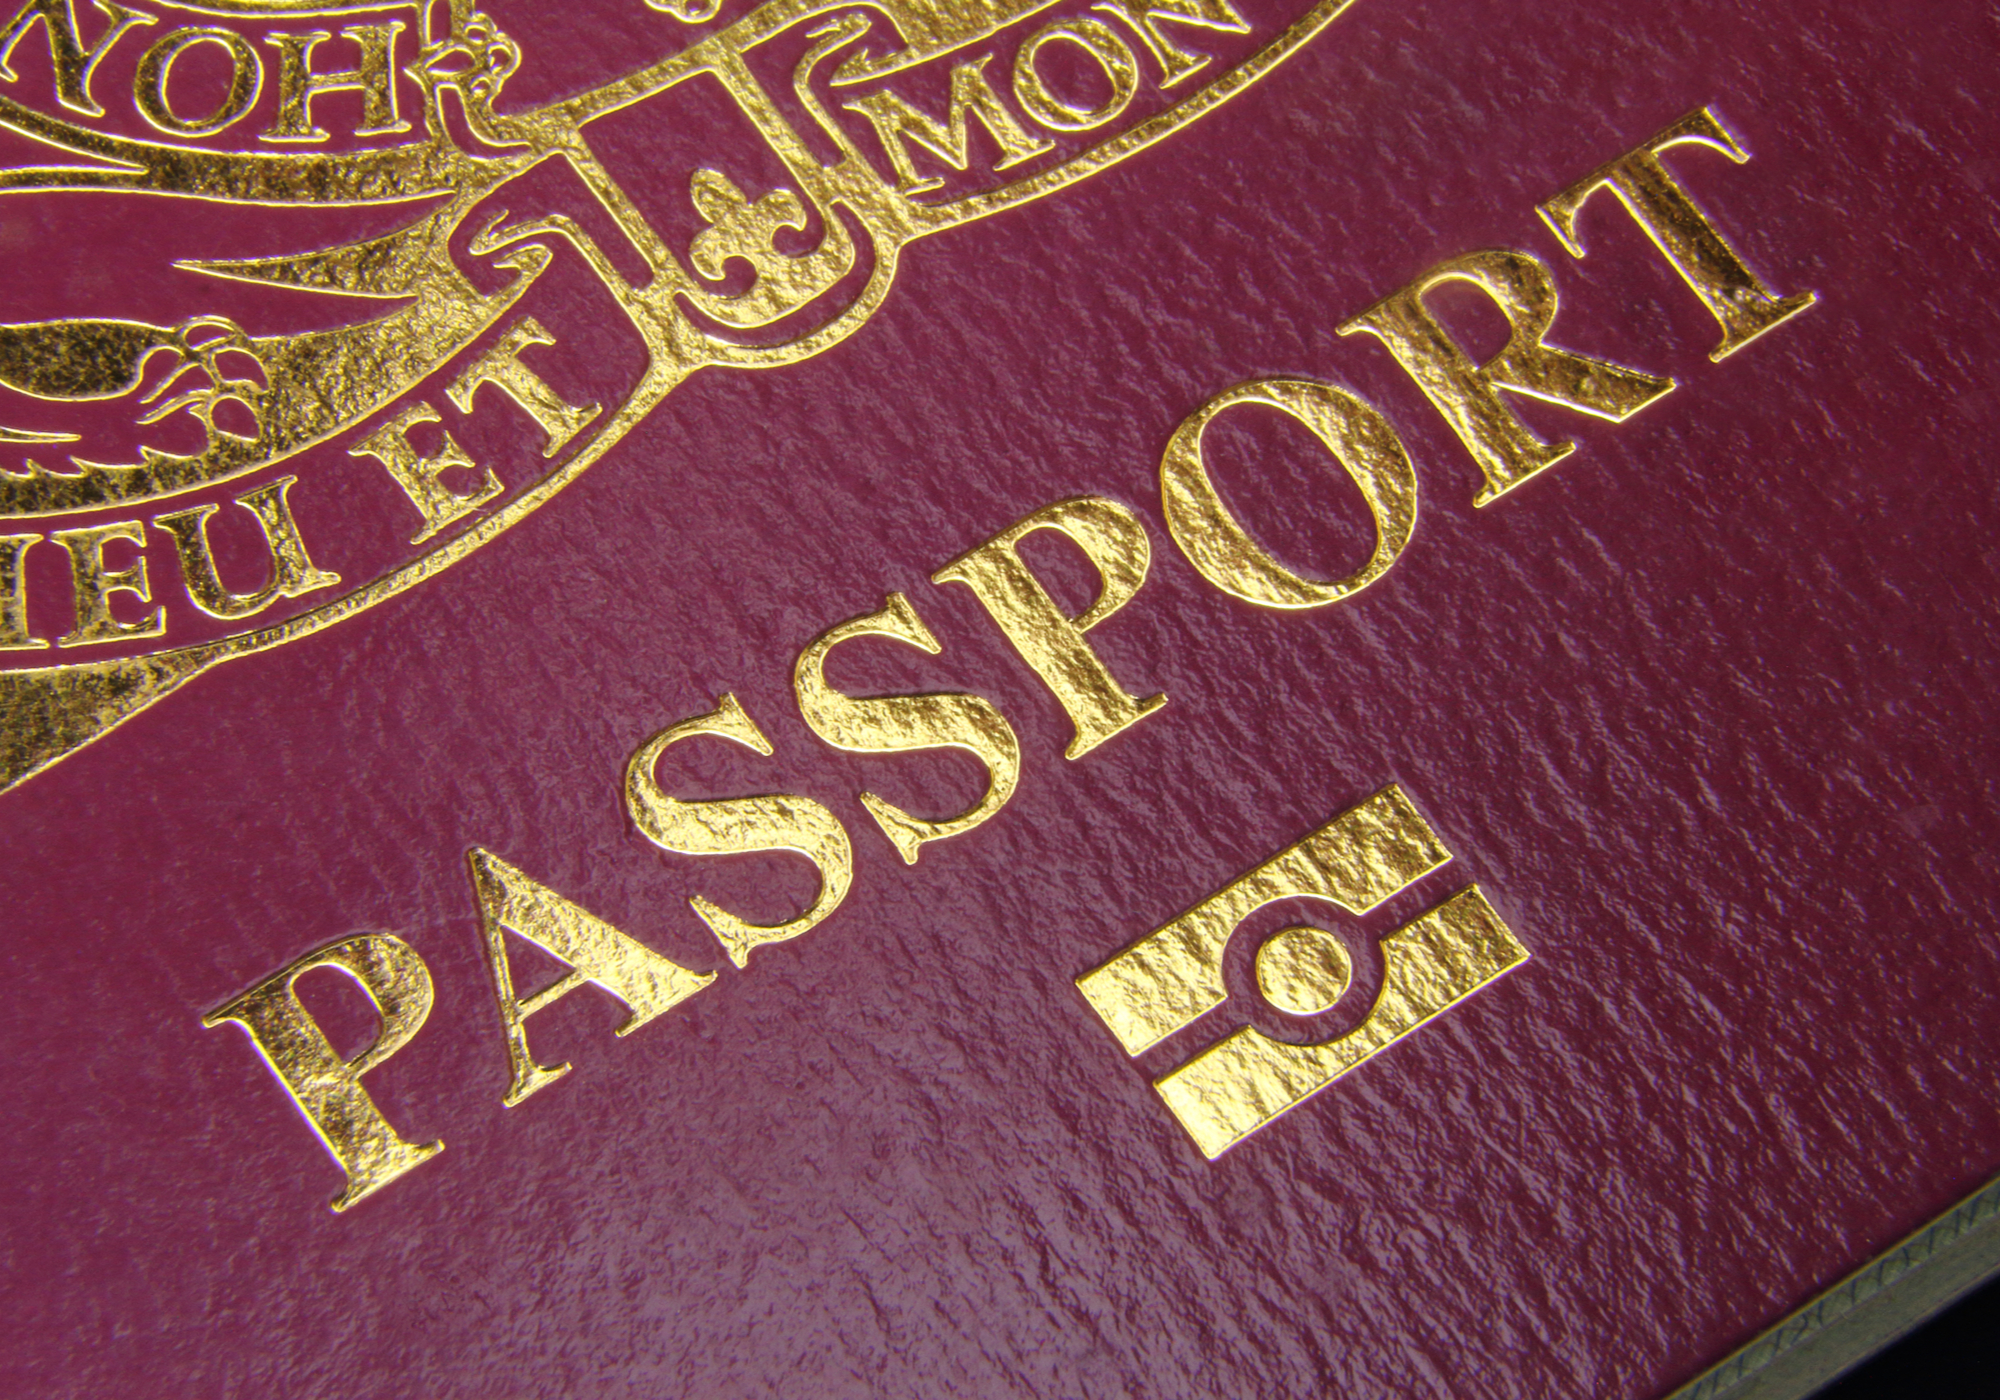 Sopra Steria wins Home Office contract to digitise passport applications